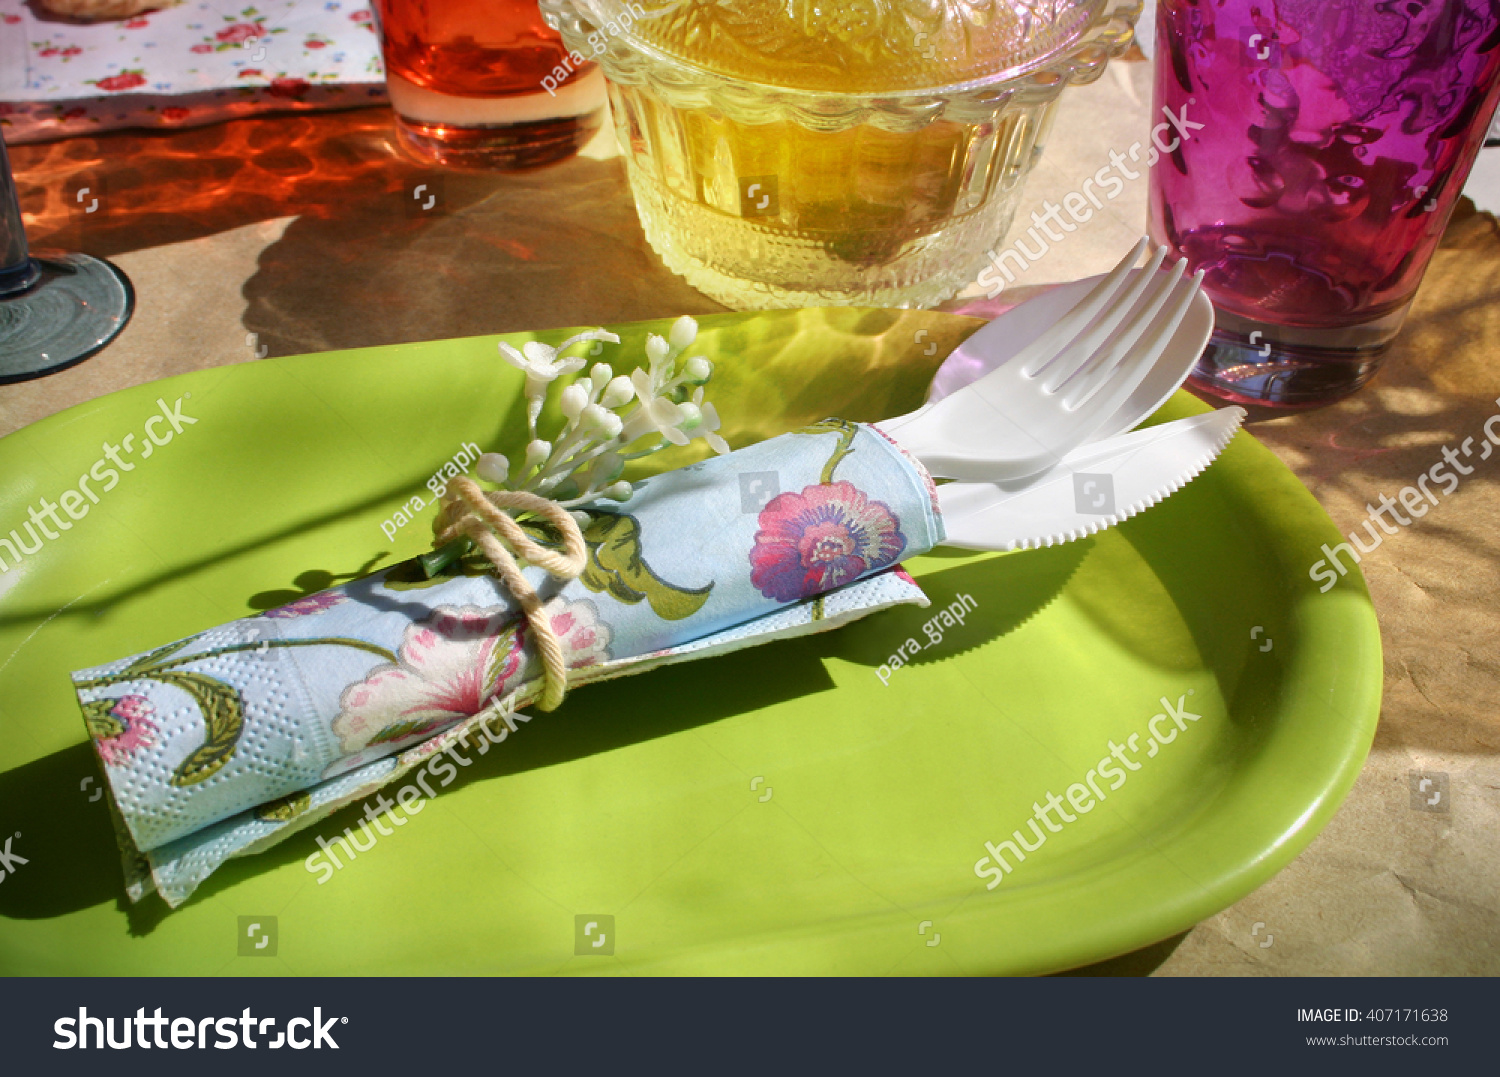 Picnic Decor Inspirational Picnic Table Decoration Decor Ideas Stock Photo